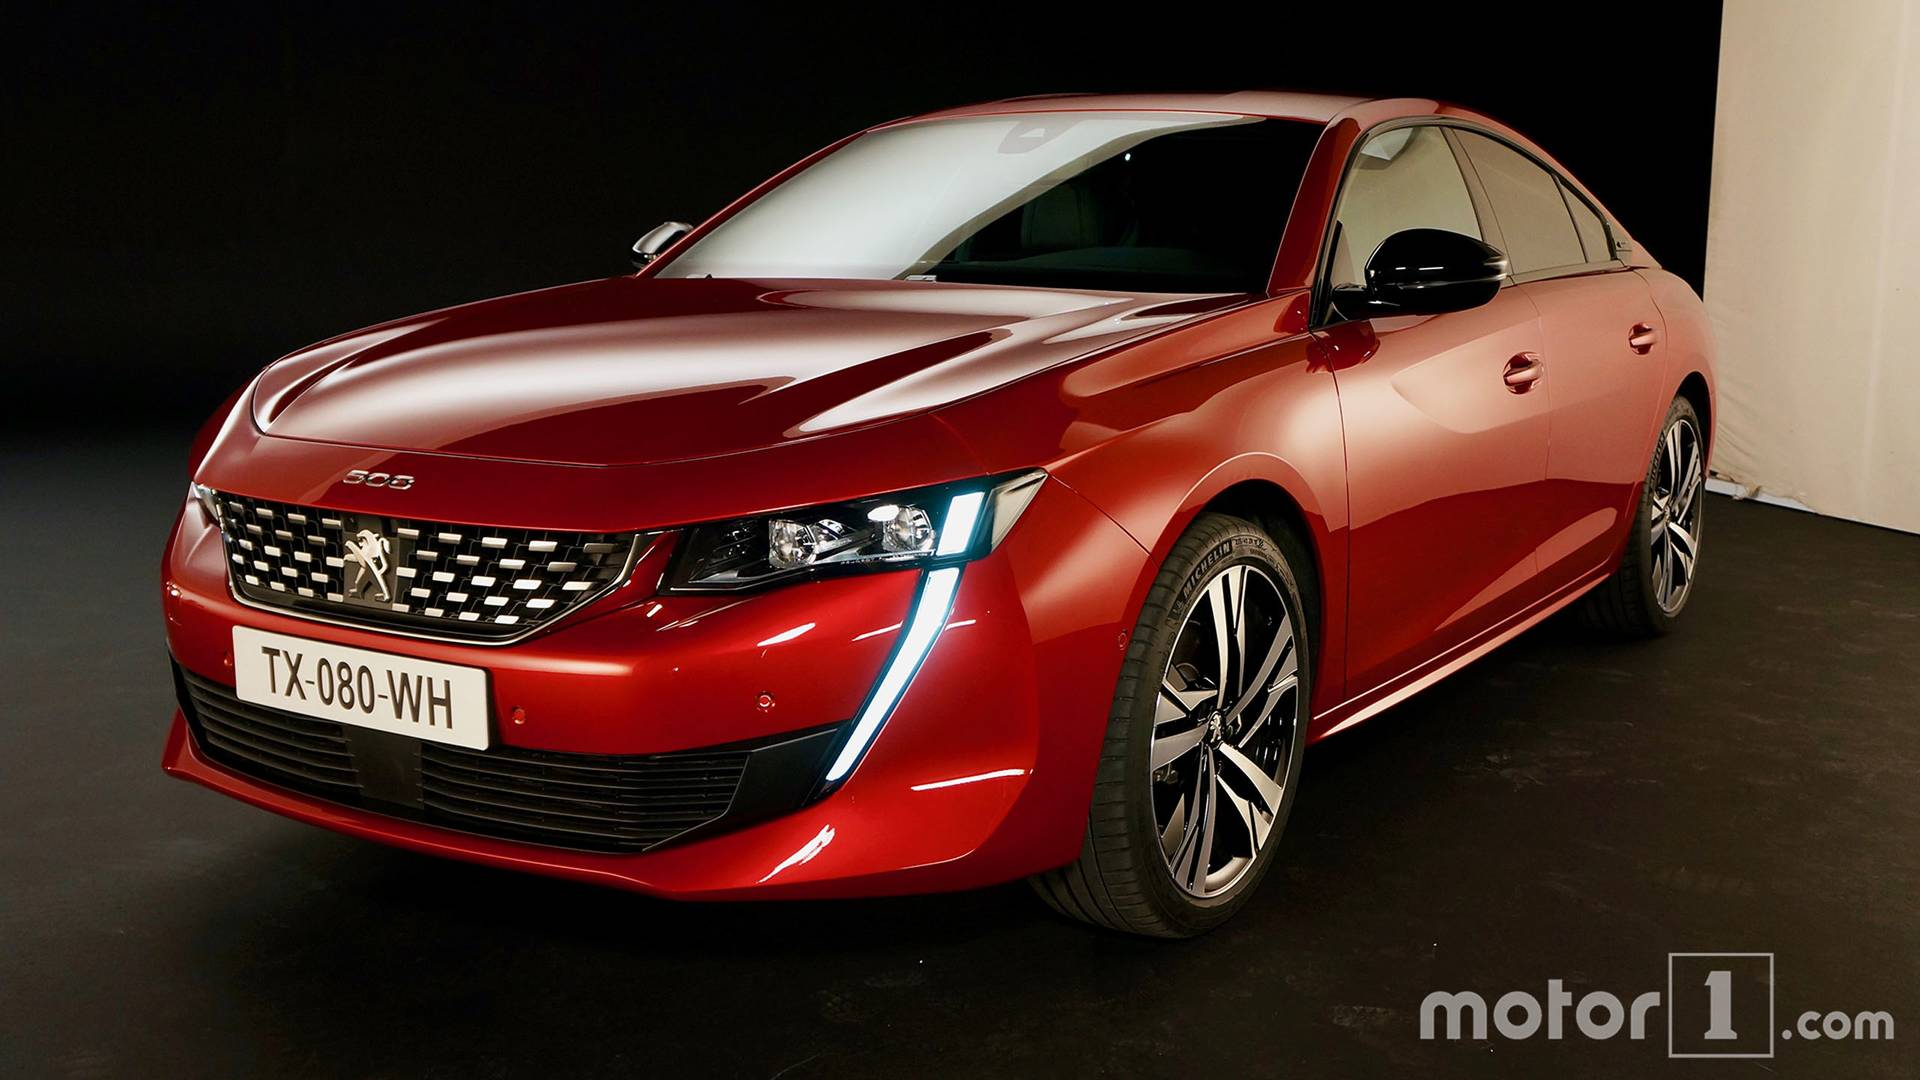 Take A Detailed Look At The Peugeot 508 Before Its Geneva Debut